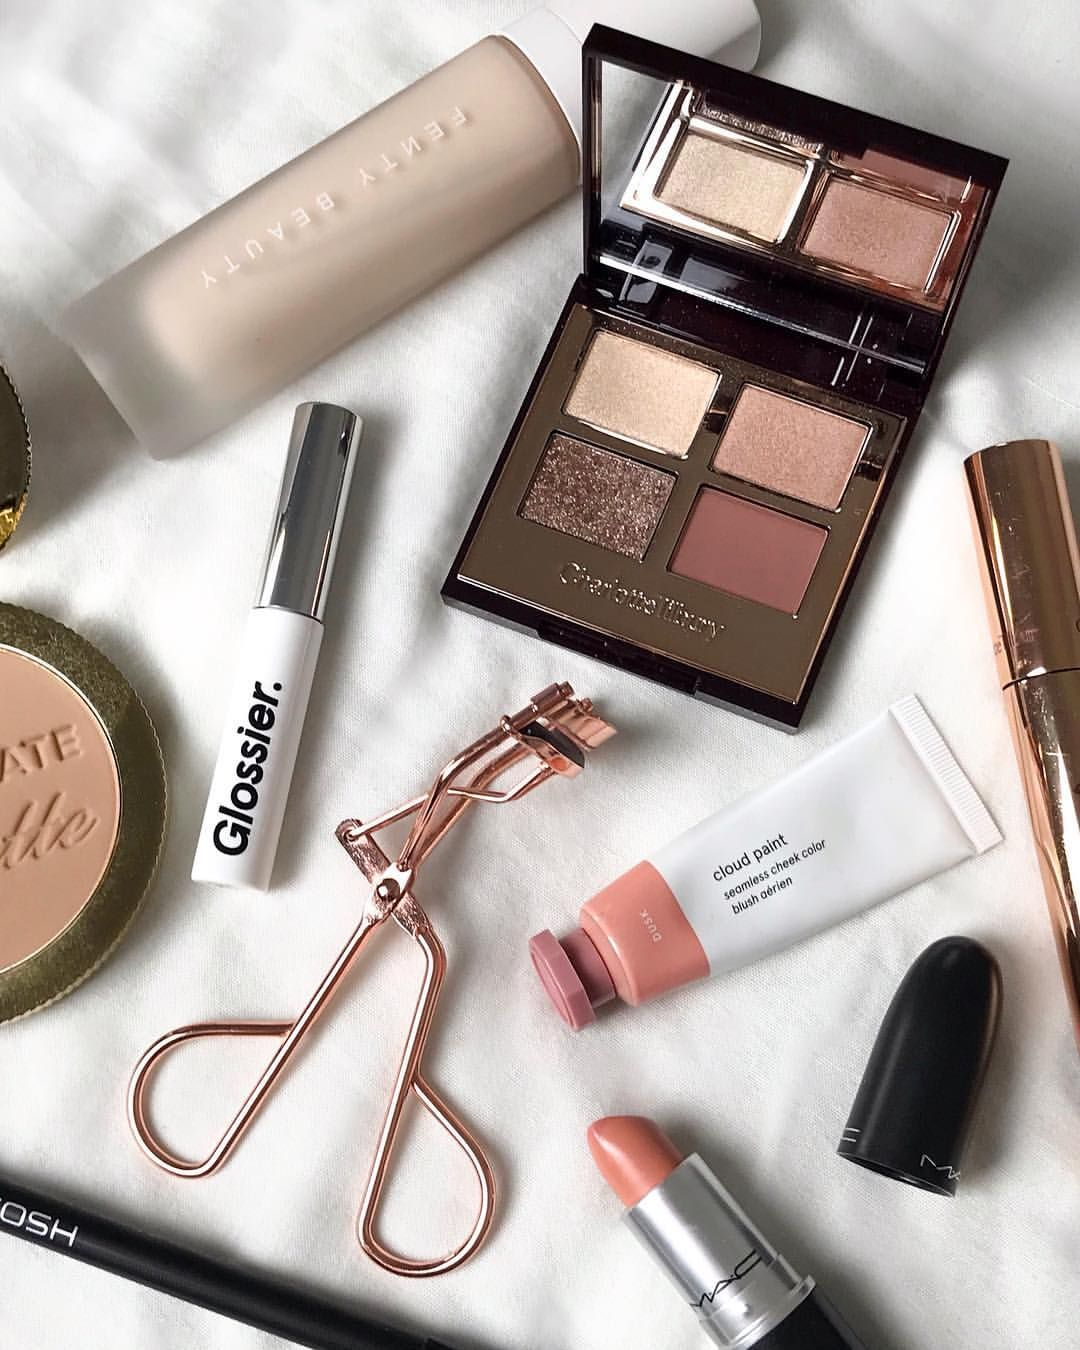 """M A I Y A on Instagram """"A few of my current makeup picks"""